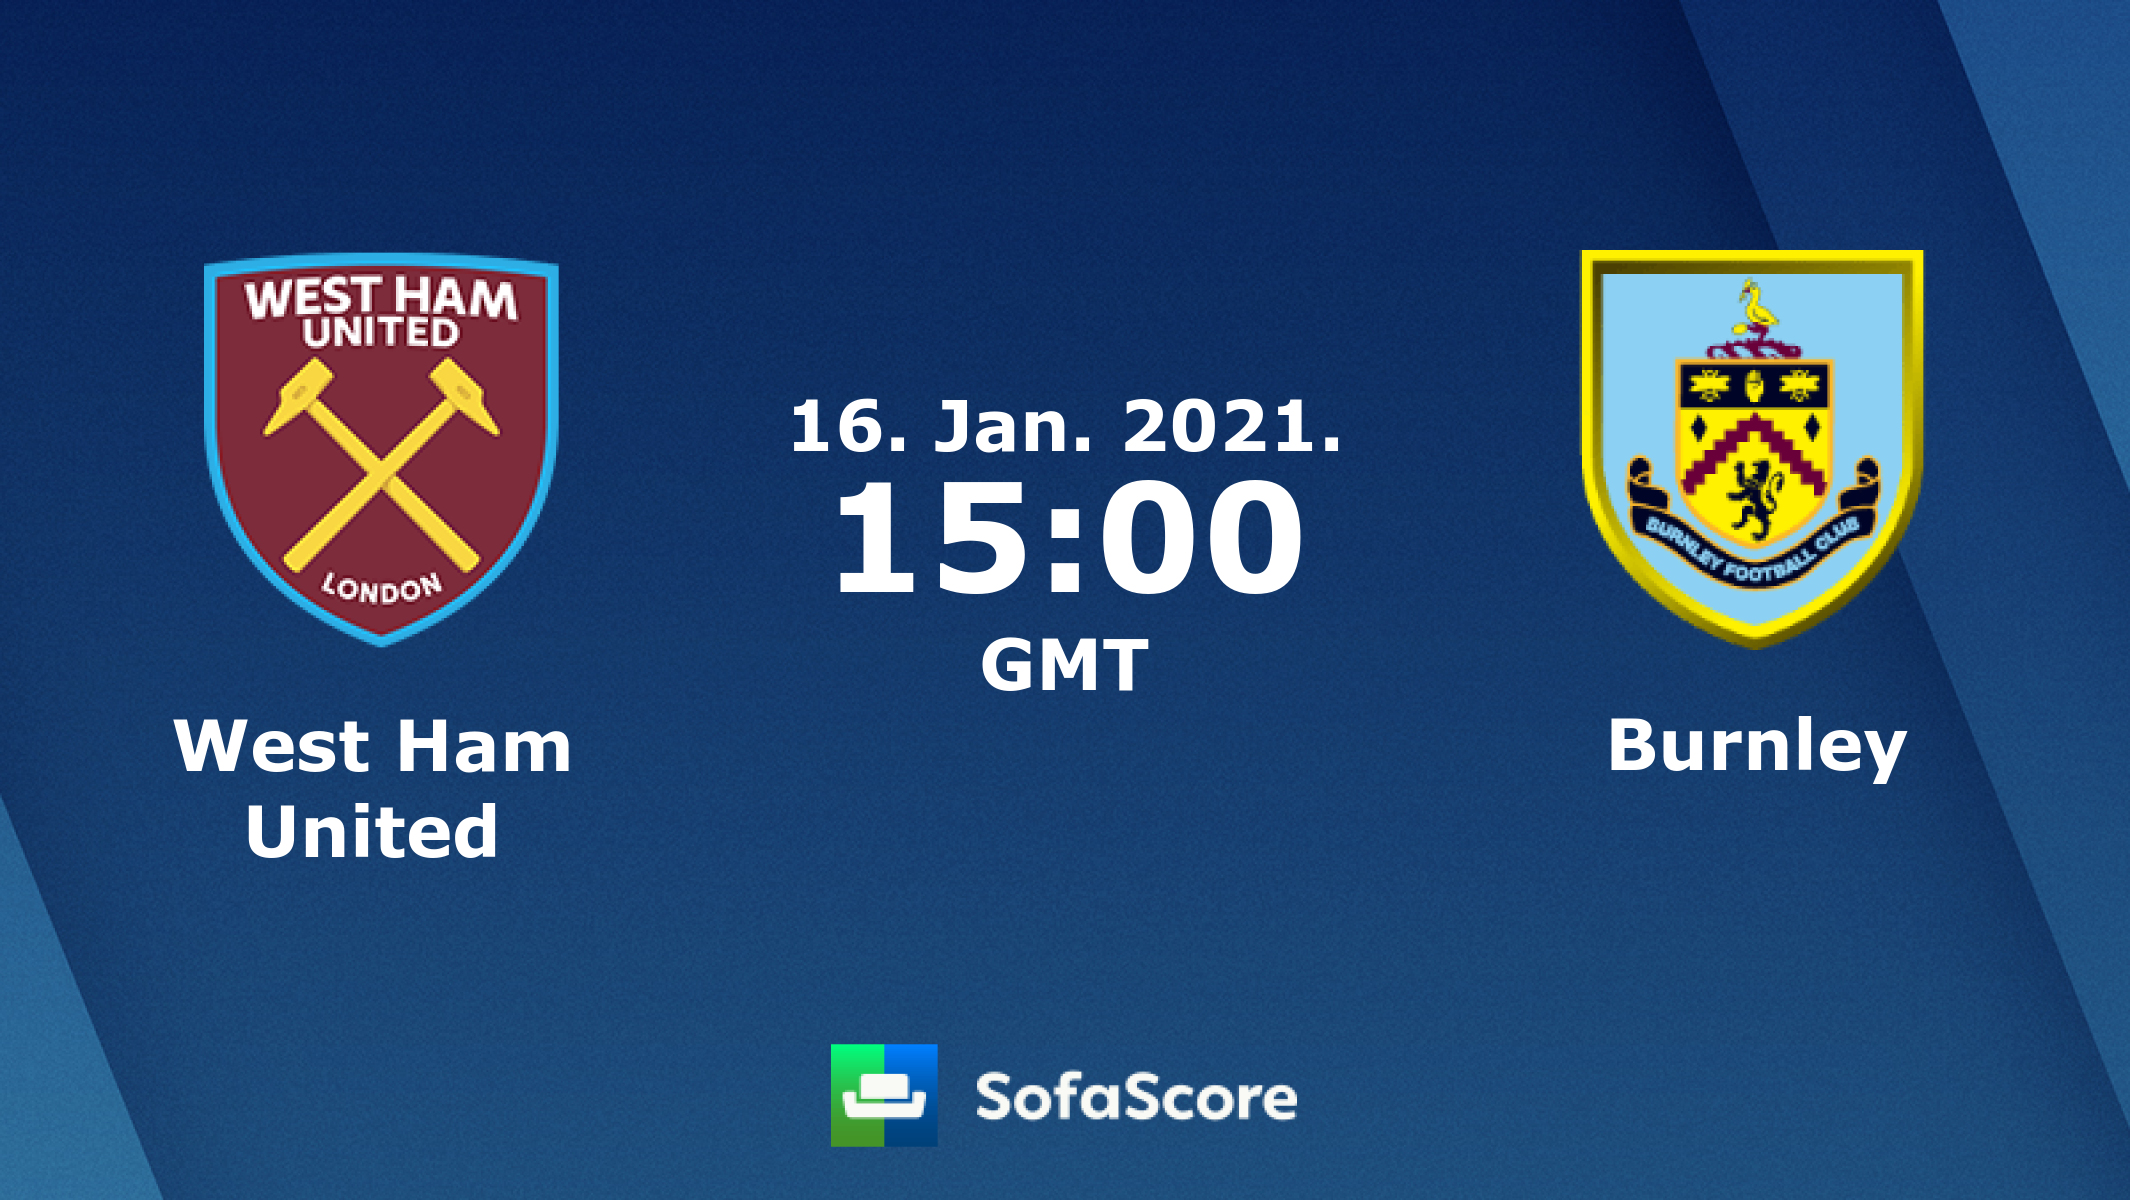 West Ham United Burnley Live Score Video Stream And H2h Results Sofascore